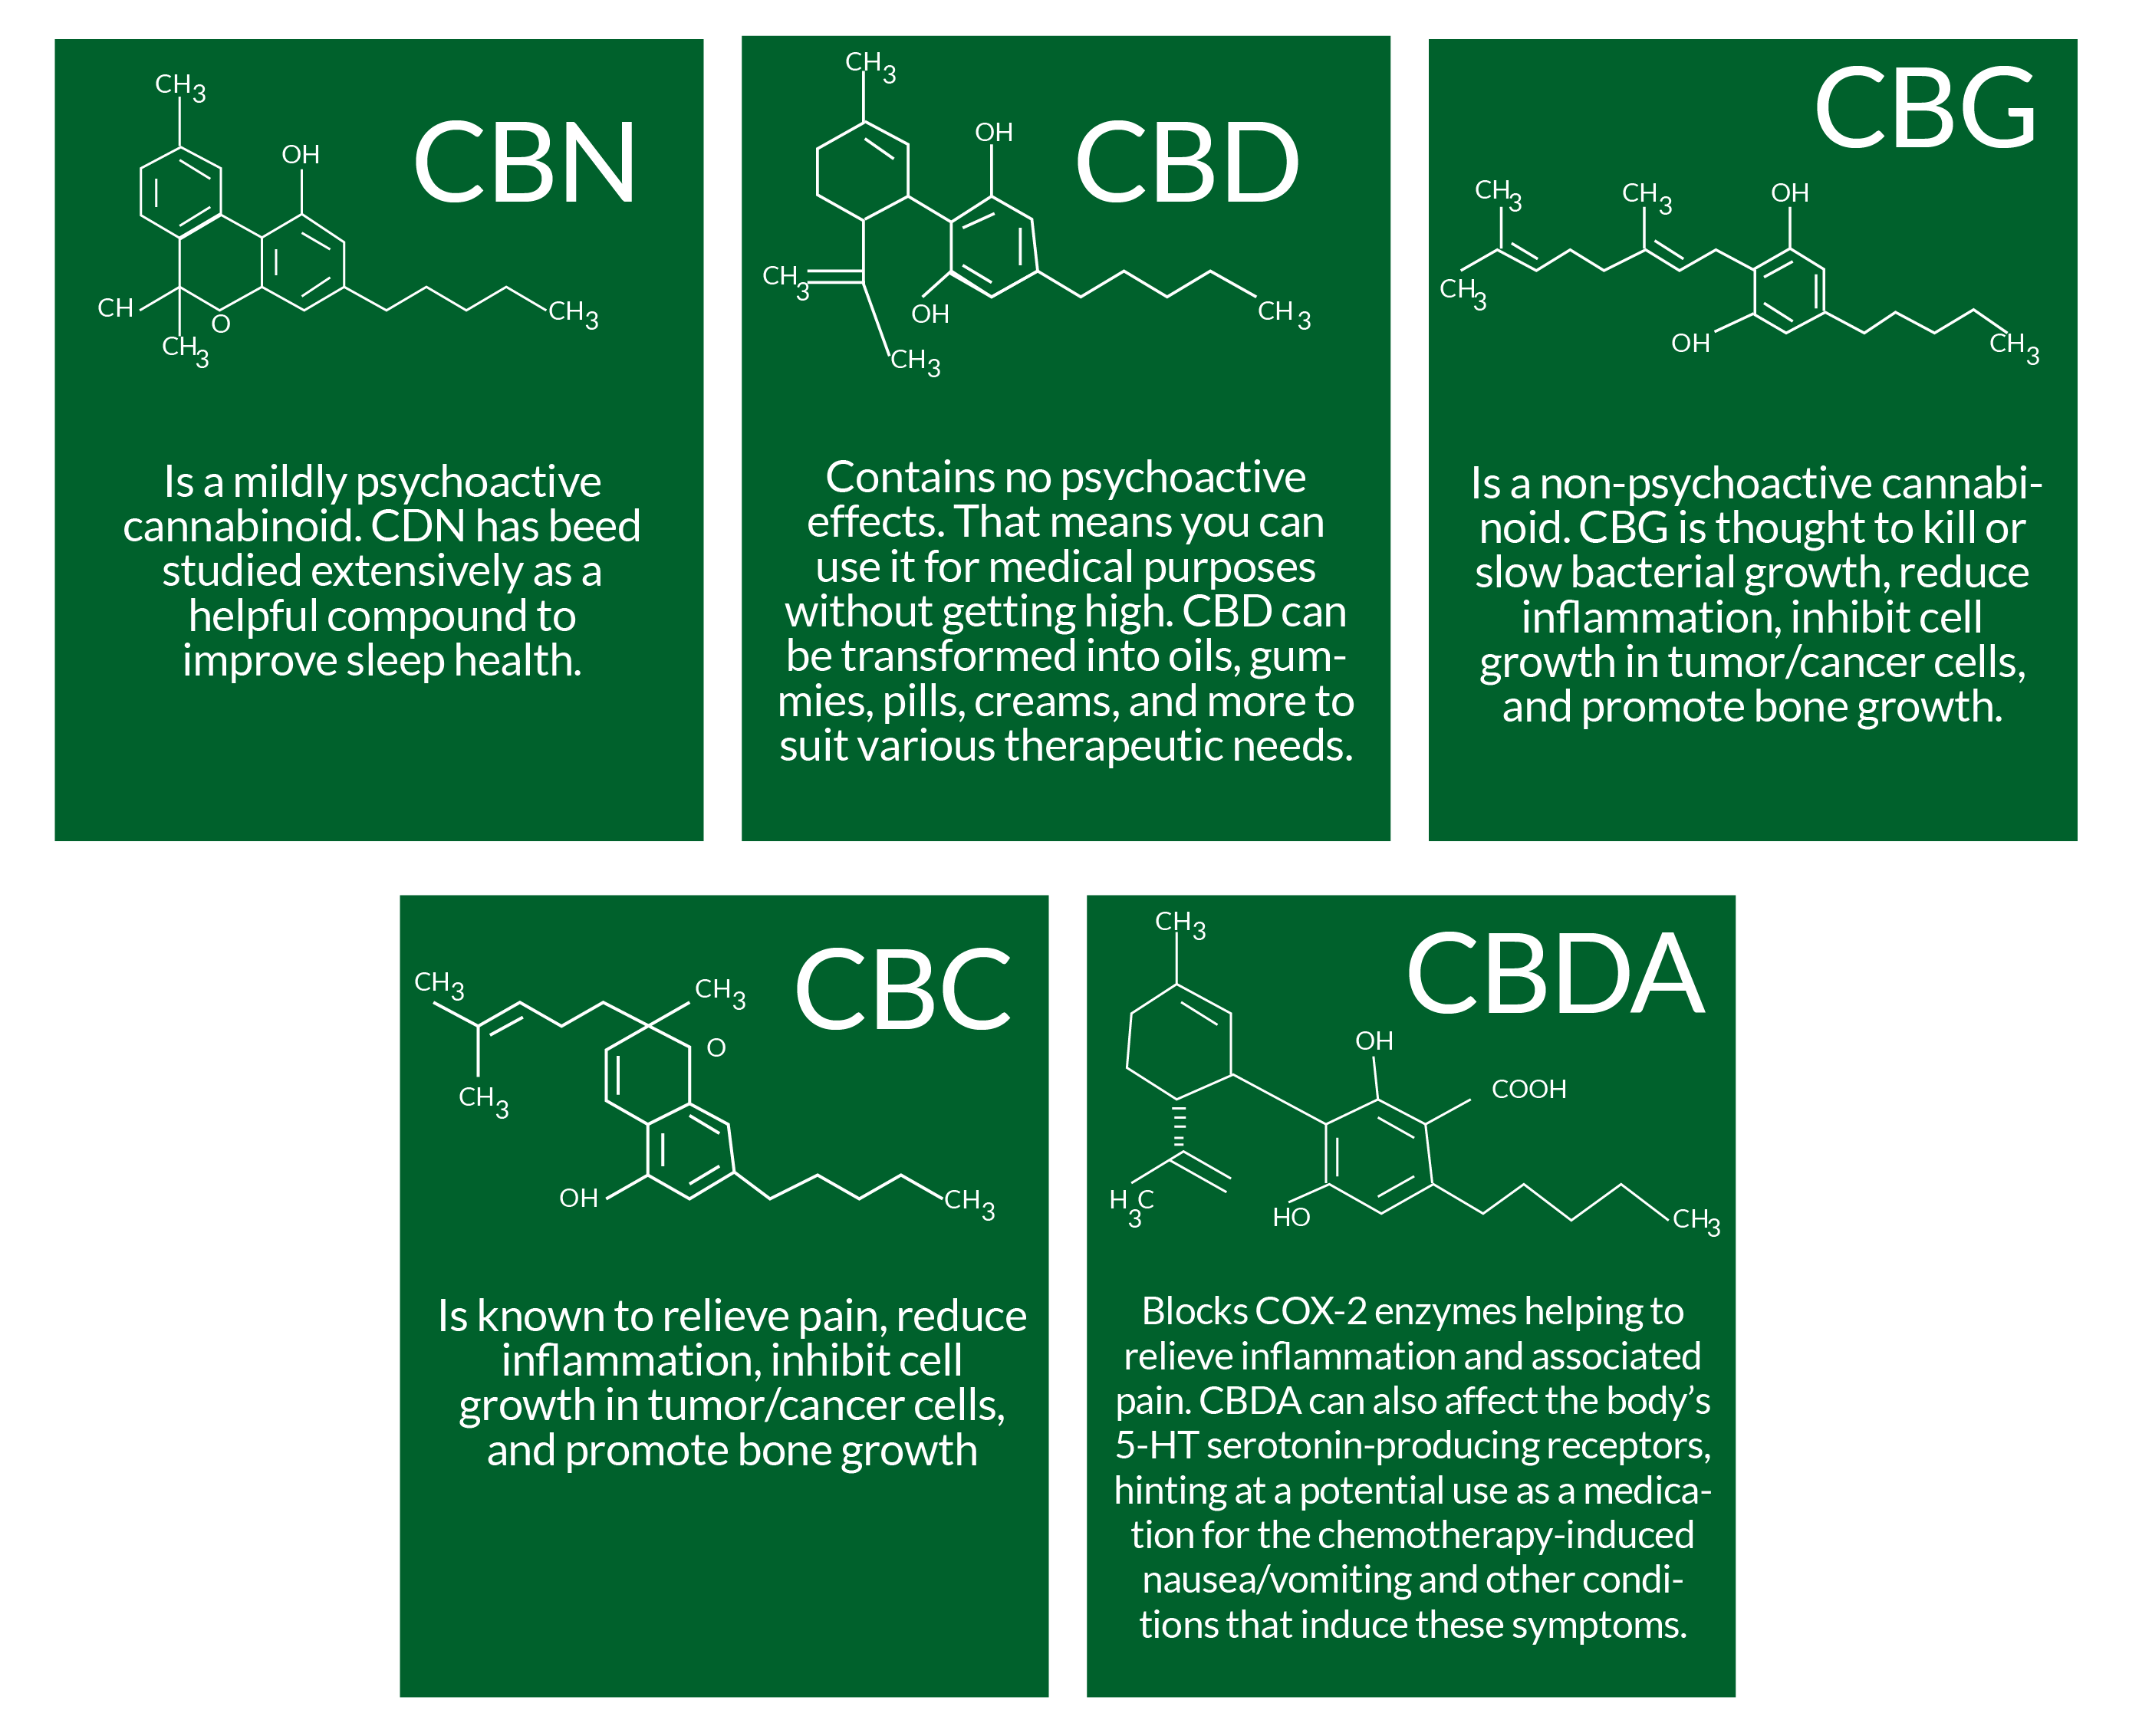 cannabinoids-infographic-cbdlion-01.png